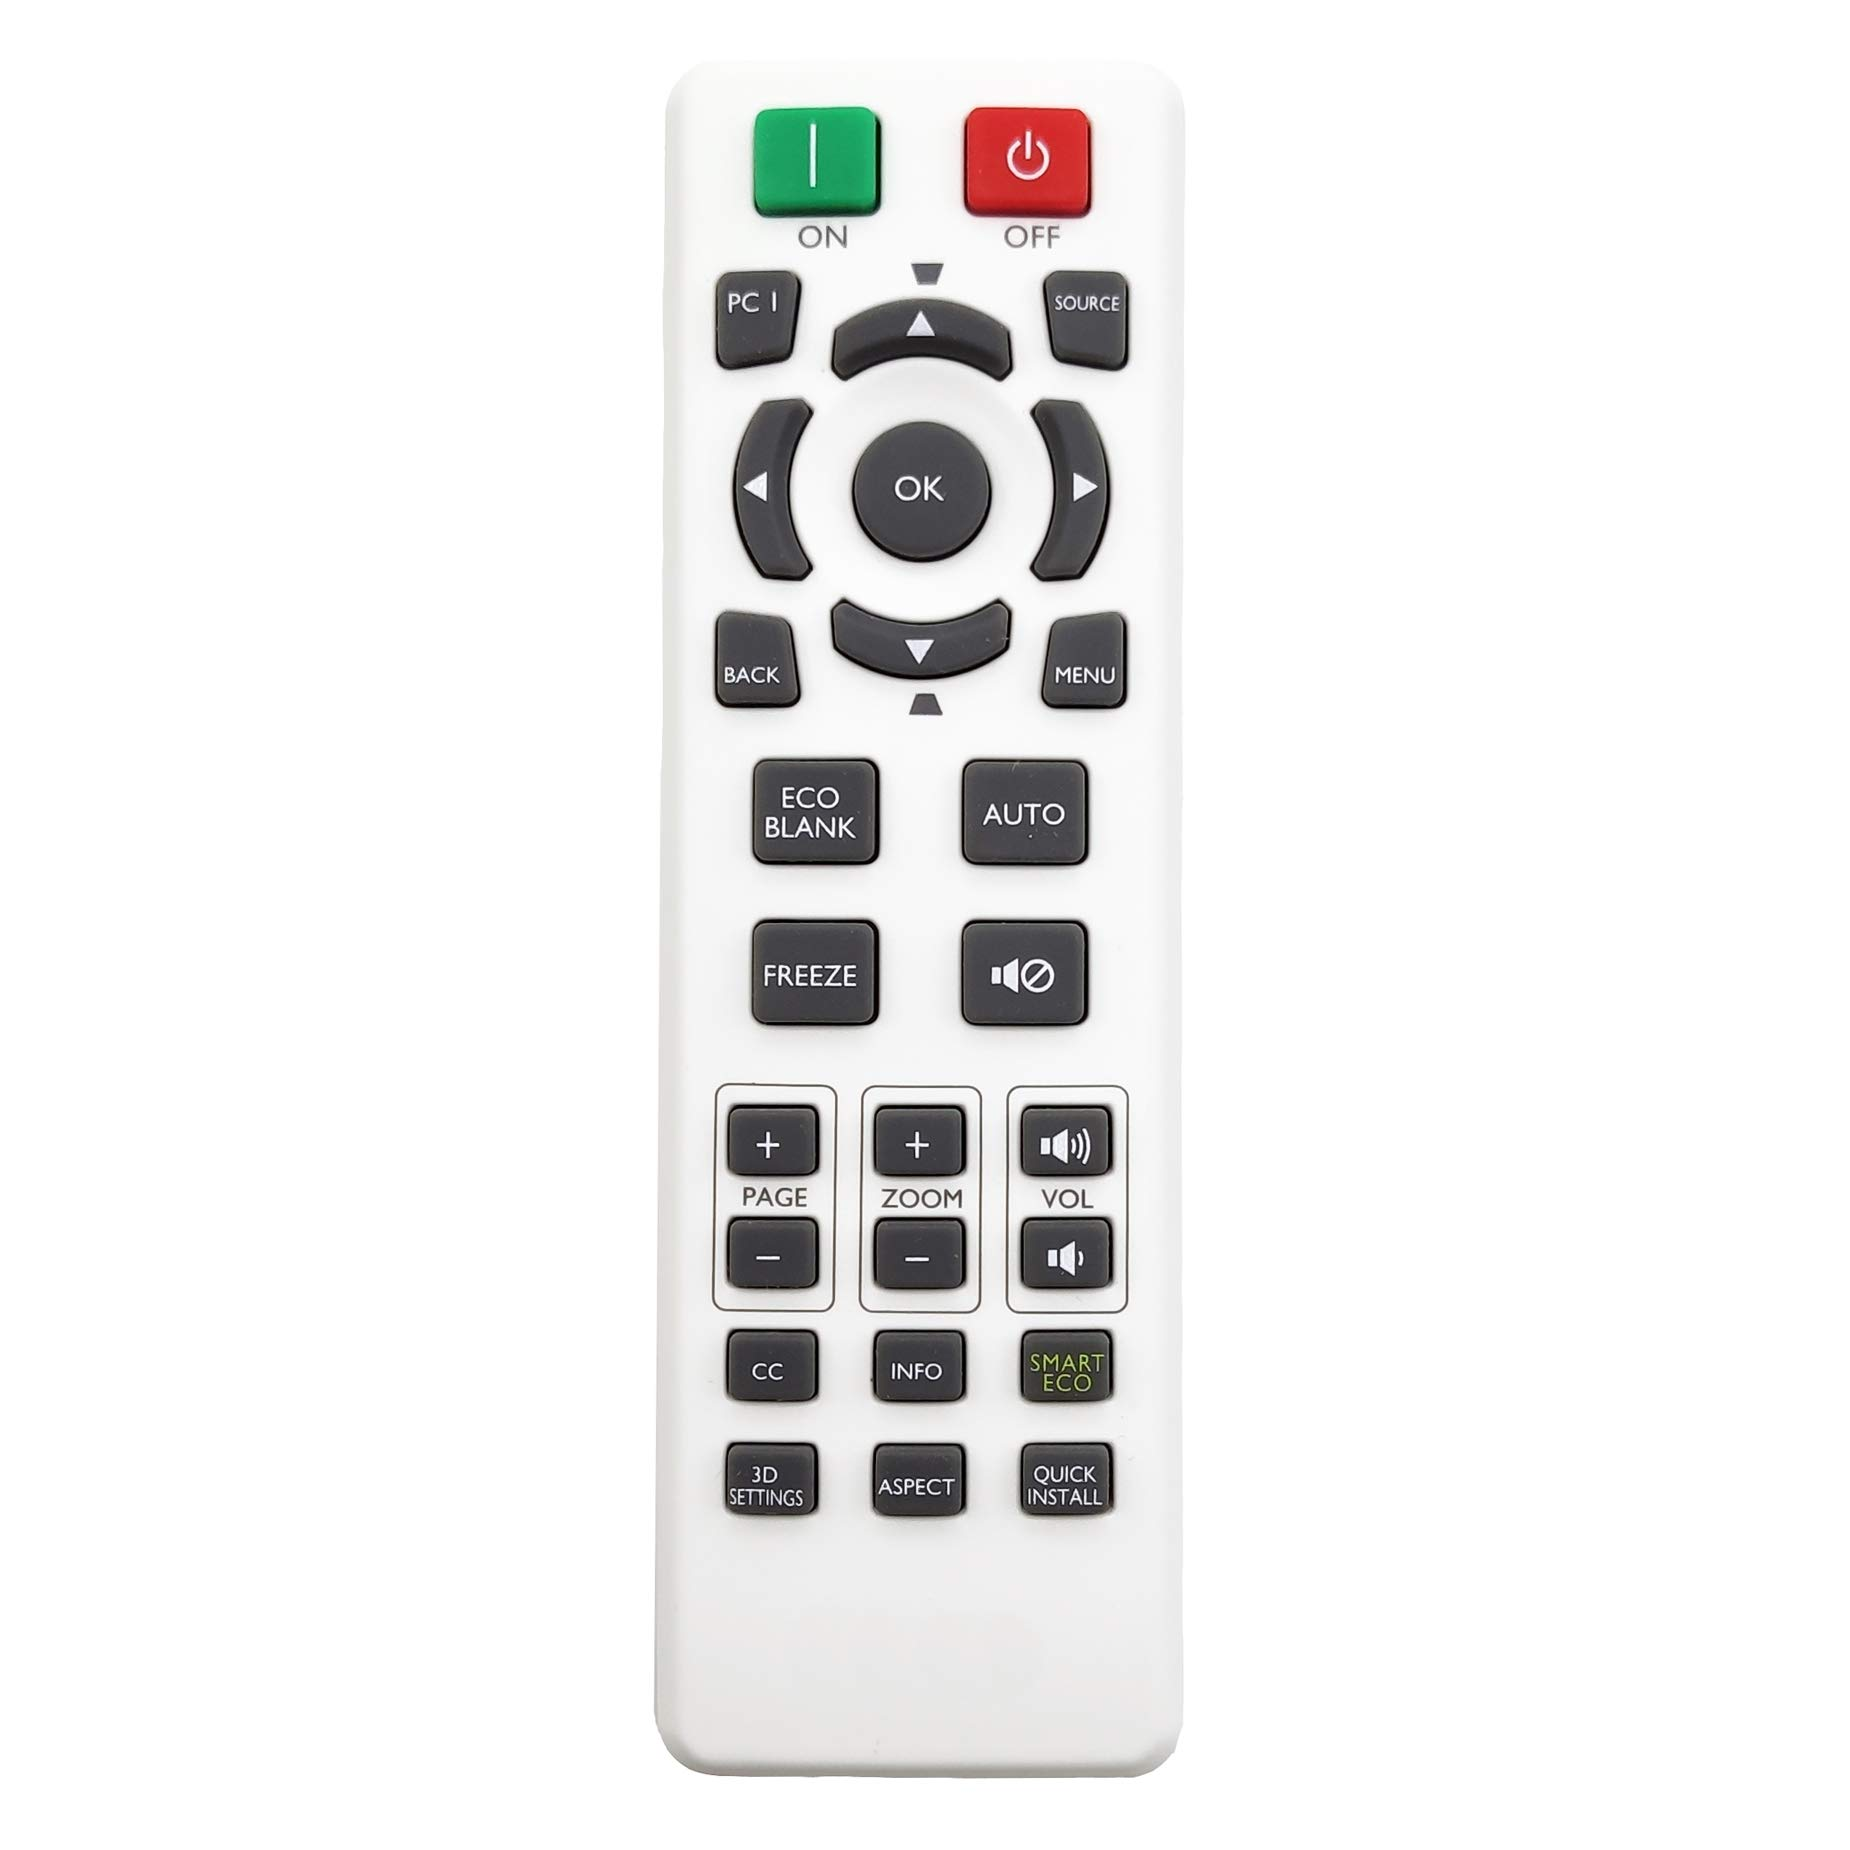 InTeching 5J.JG706.001 Projector Remote Control for BenQ RCX013, MH530FHD, MH534, MH606w, MS521H, MS524AE, MS531P, MW526AE, MW533, MW605w, MX532P, MX604, MX604w, TH534, TW533, MS535A, MW535A, MH5353A